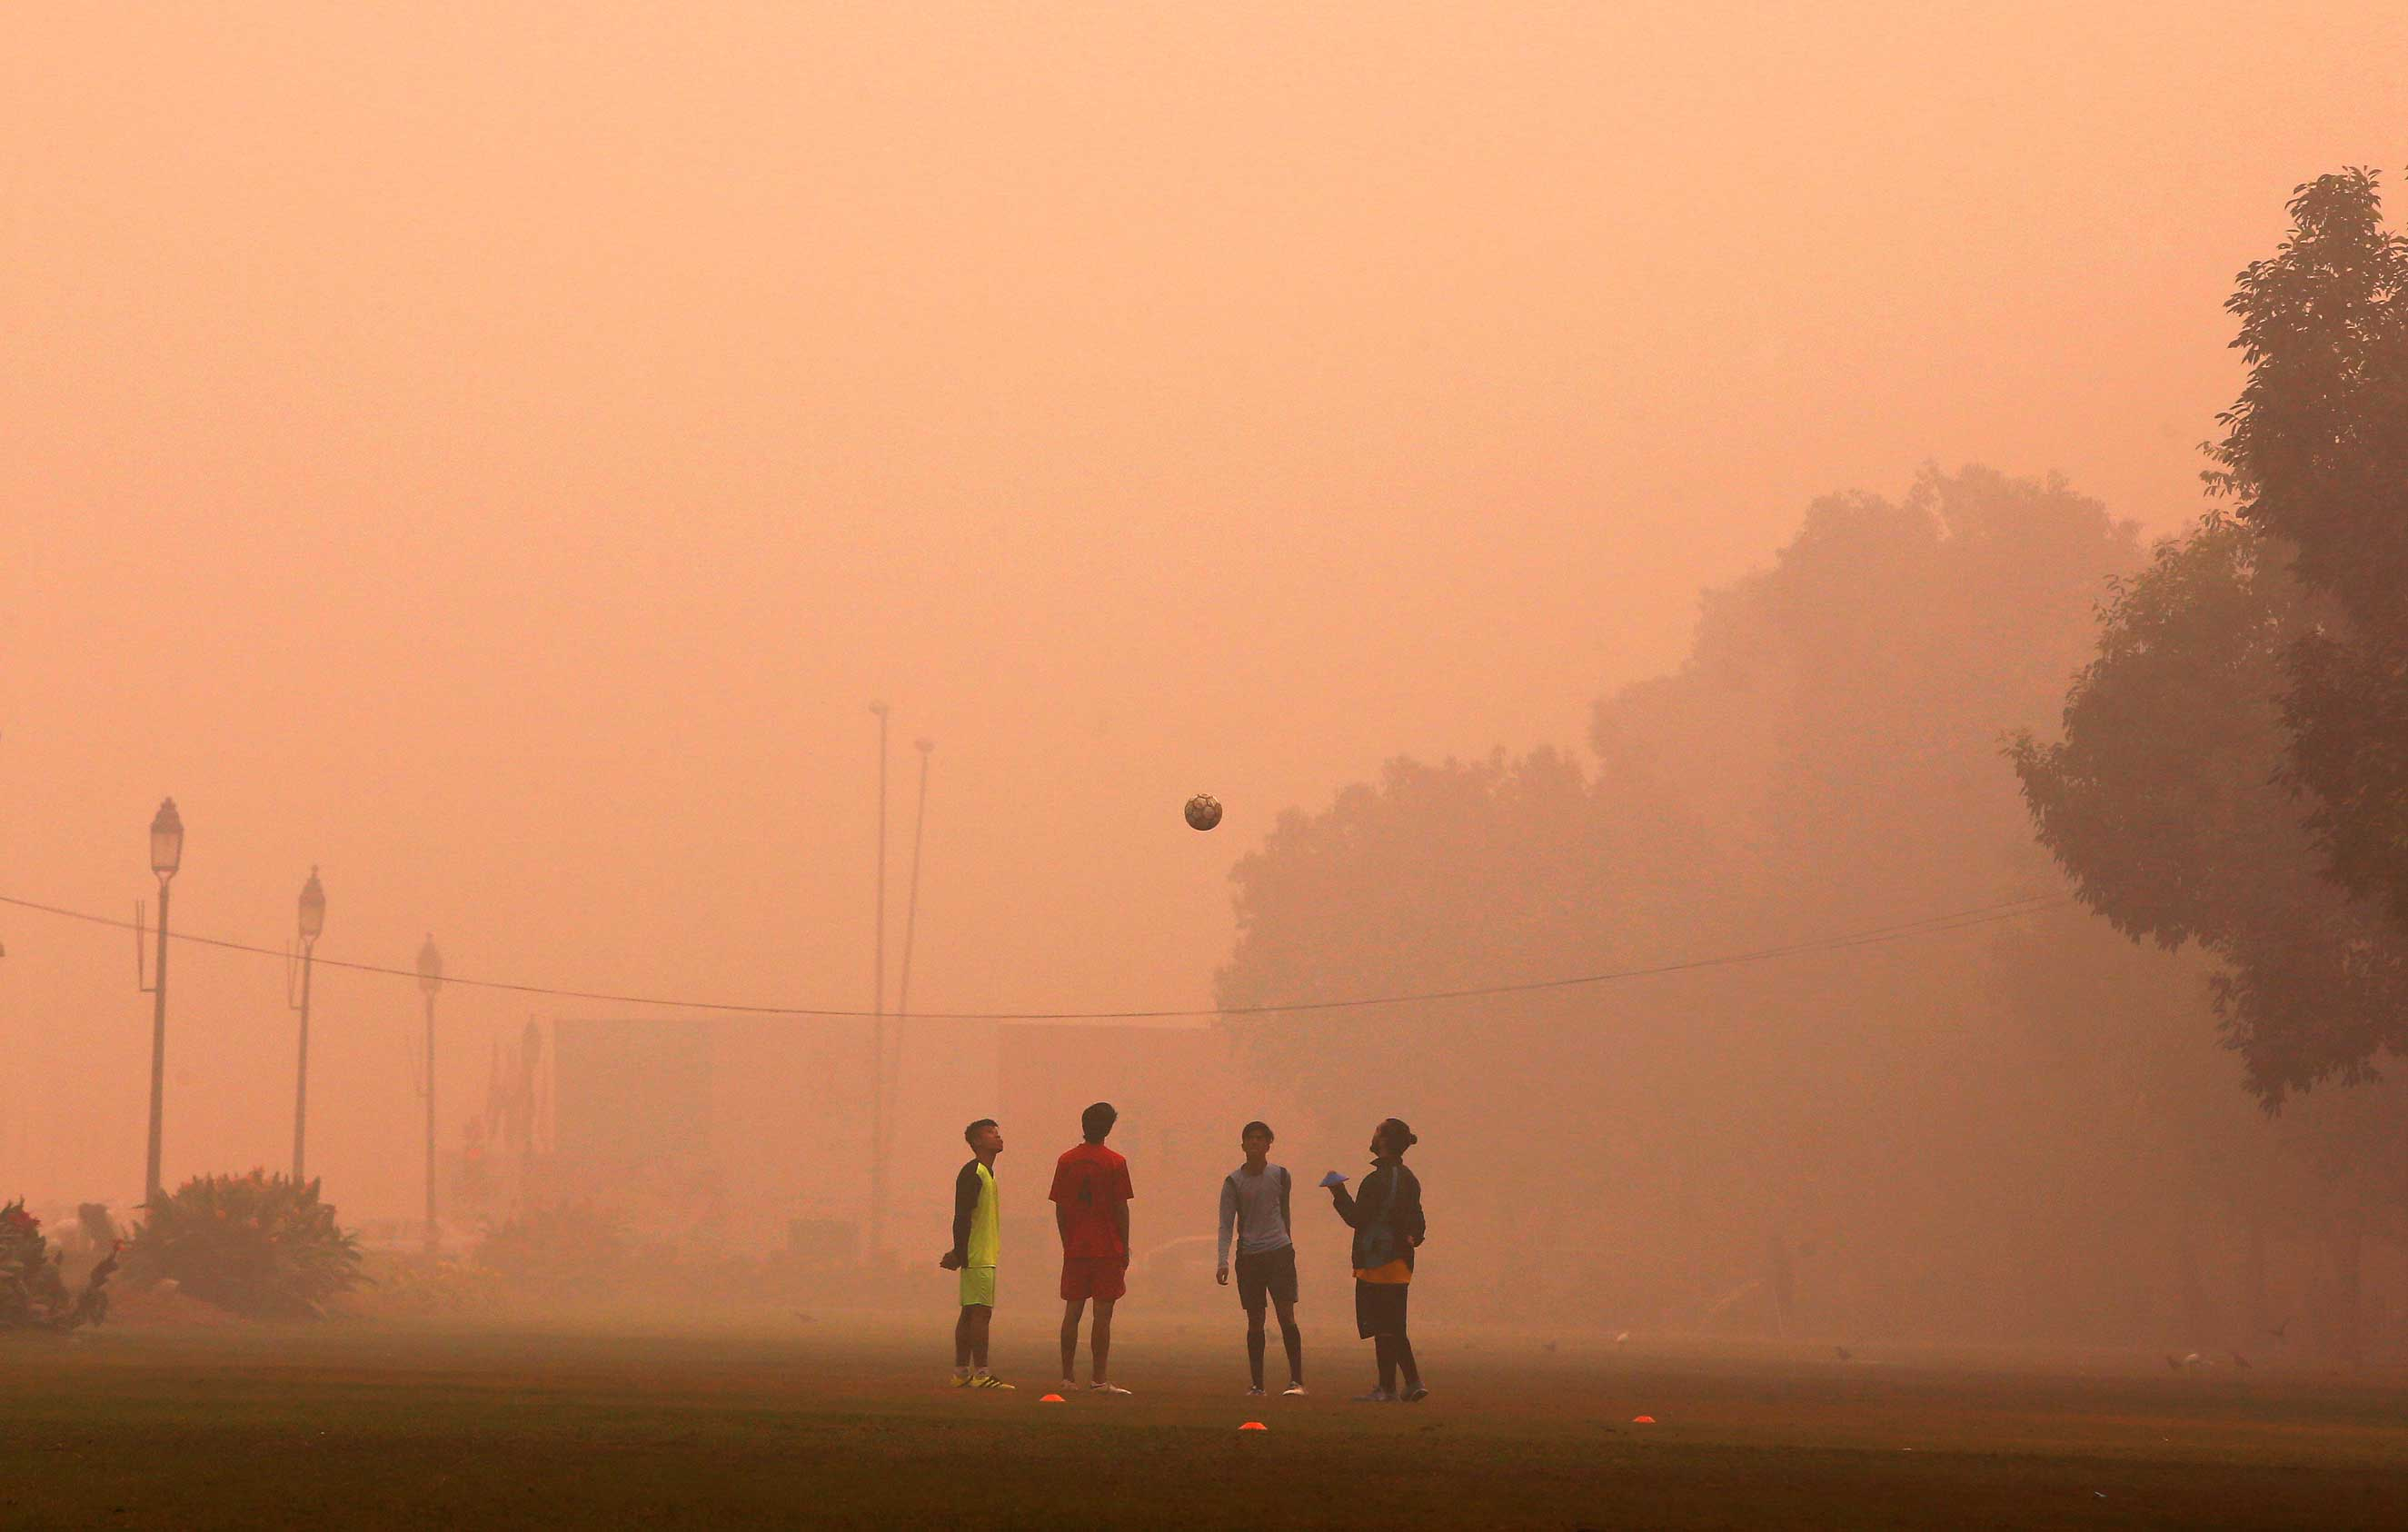 Children play on a smoggy day in New Delhi, where thousands die early from air pollution yearly